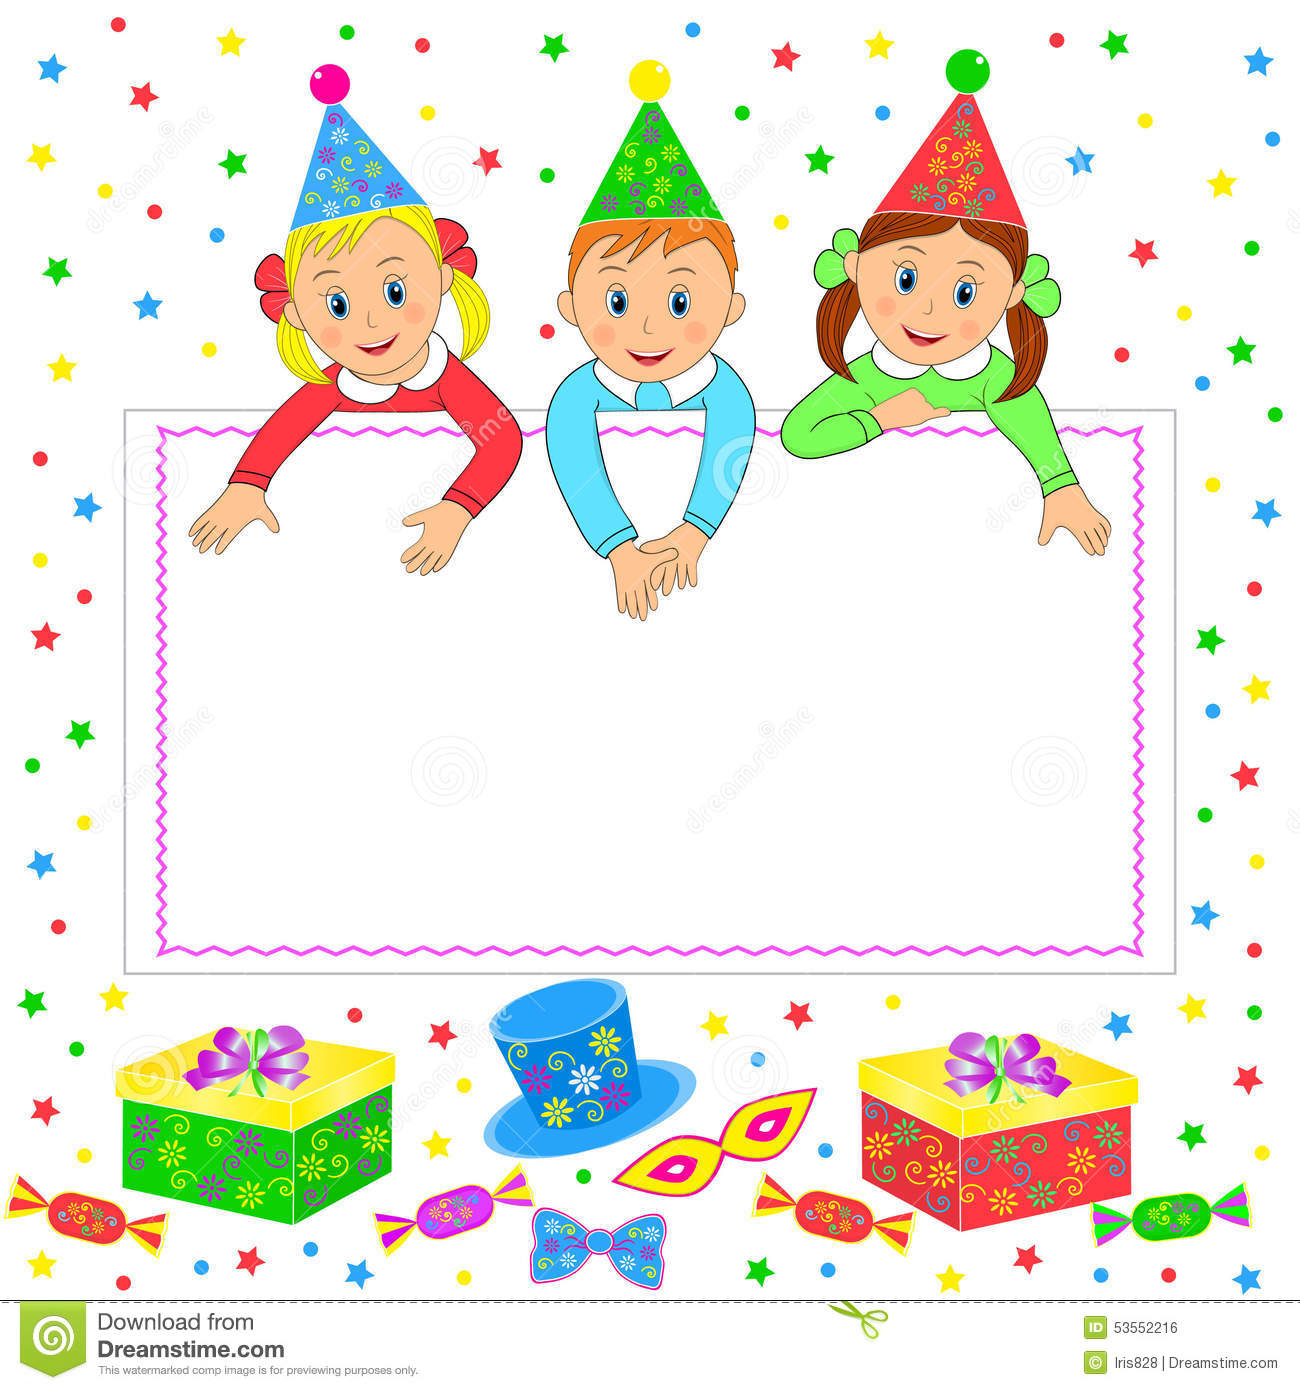 Birthday party cards invitations birthday party cardinvitation stock vector image 53552216 stopboris Gallery